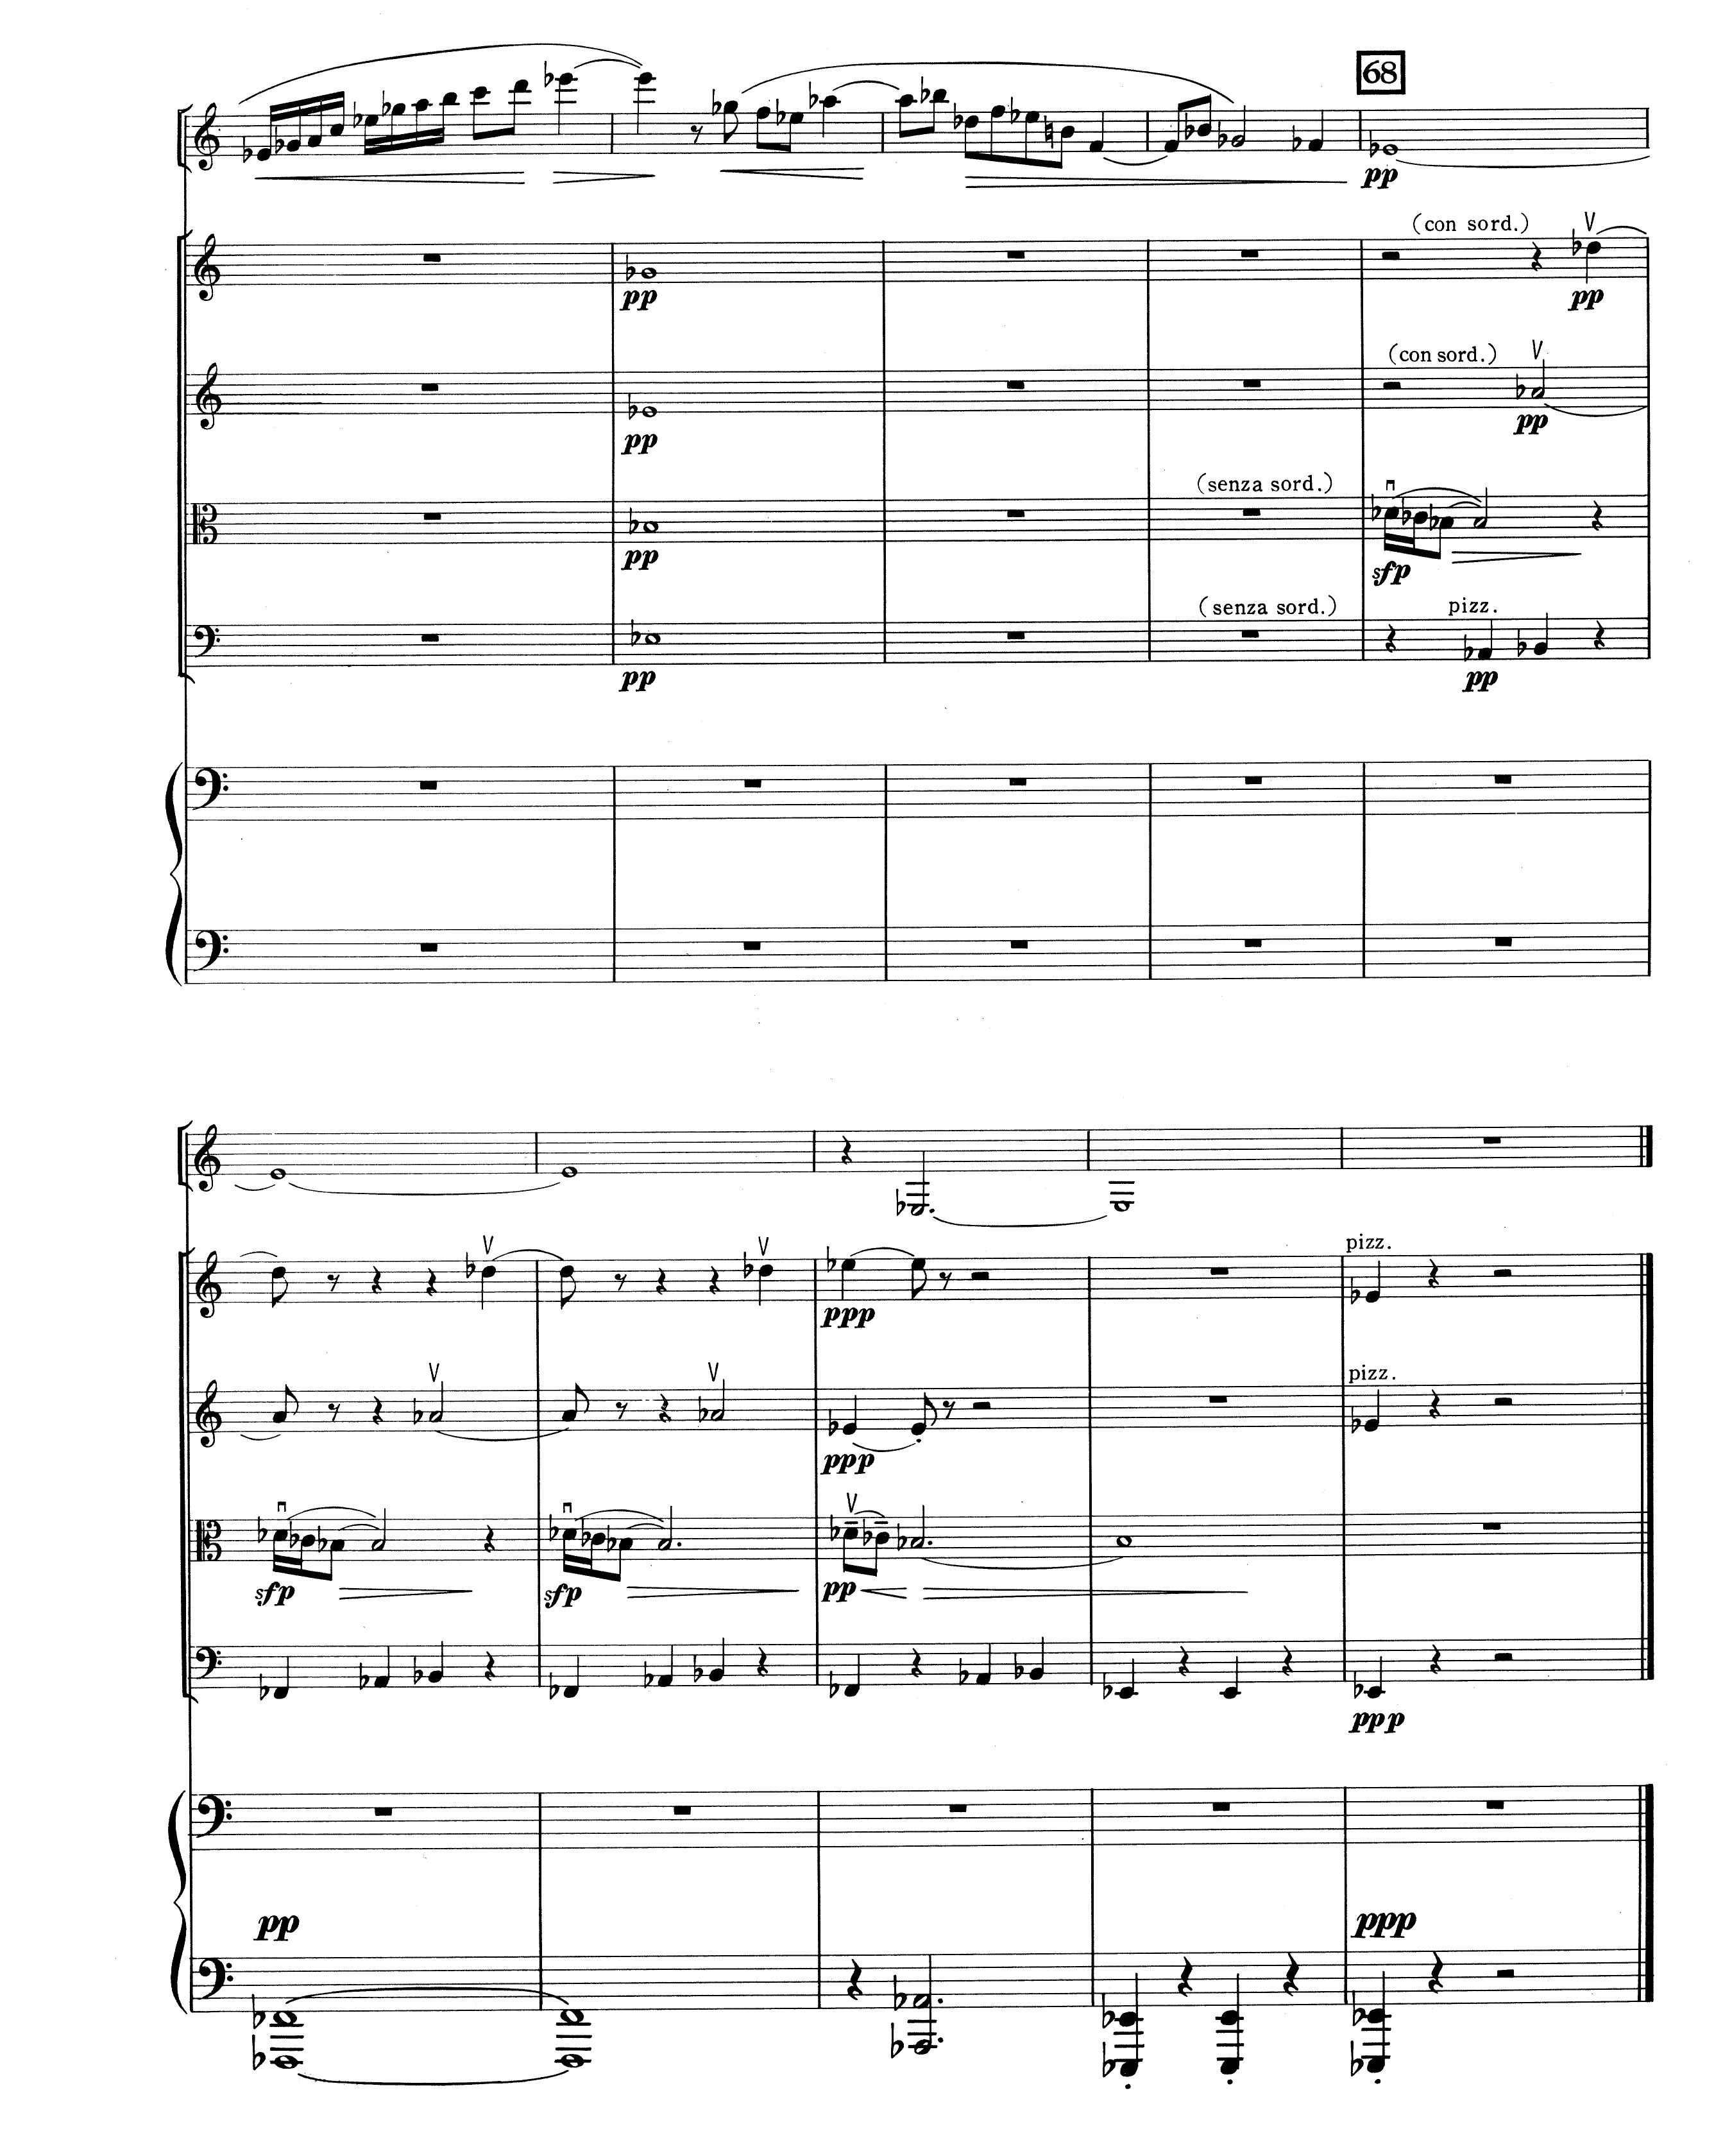 The last page of the score of Orrego-Salas's Sextet